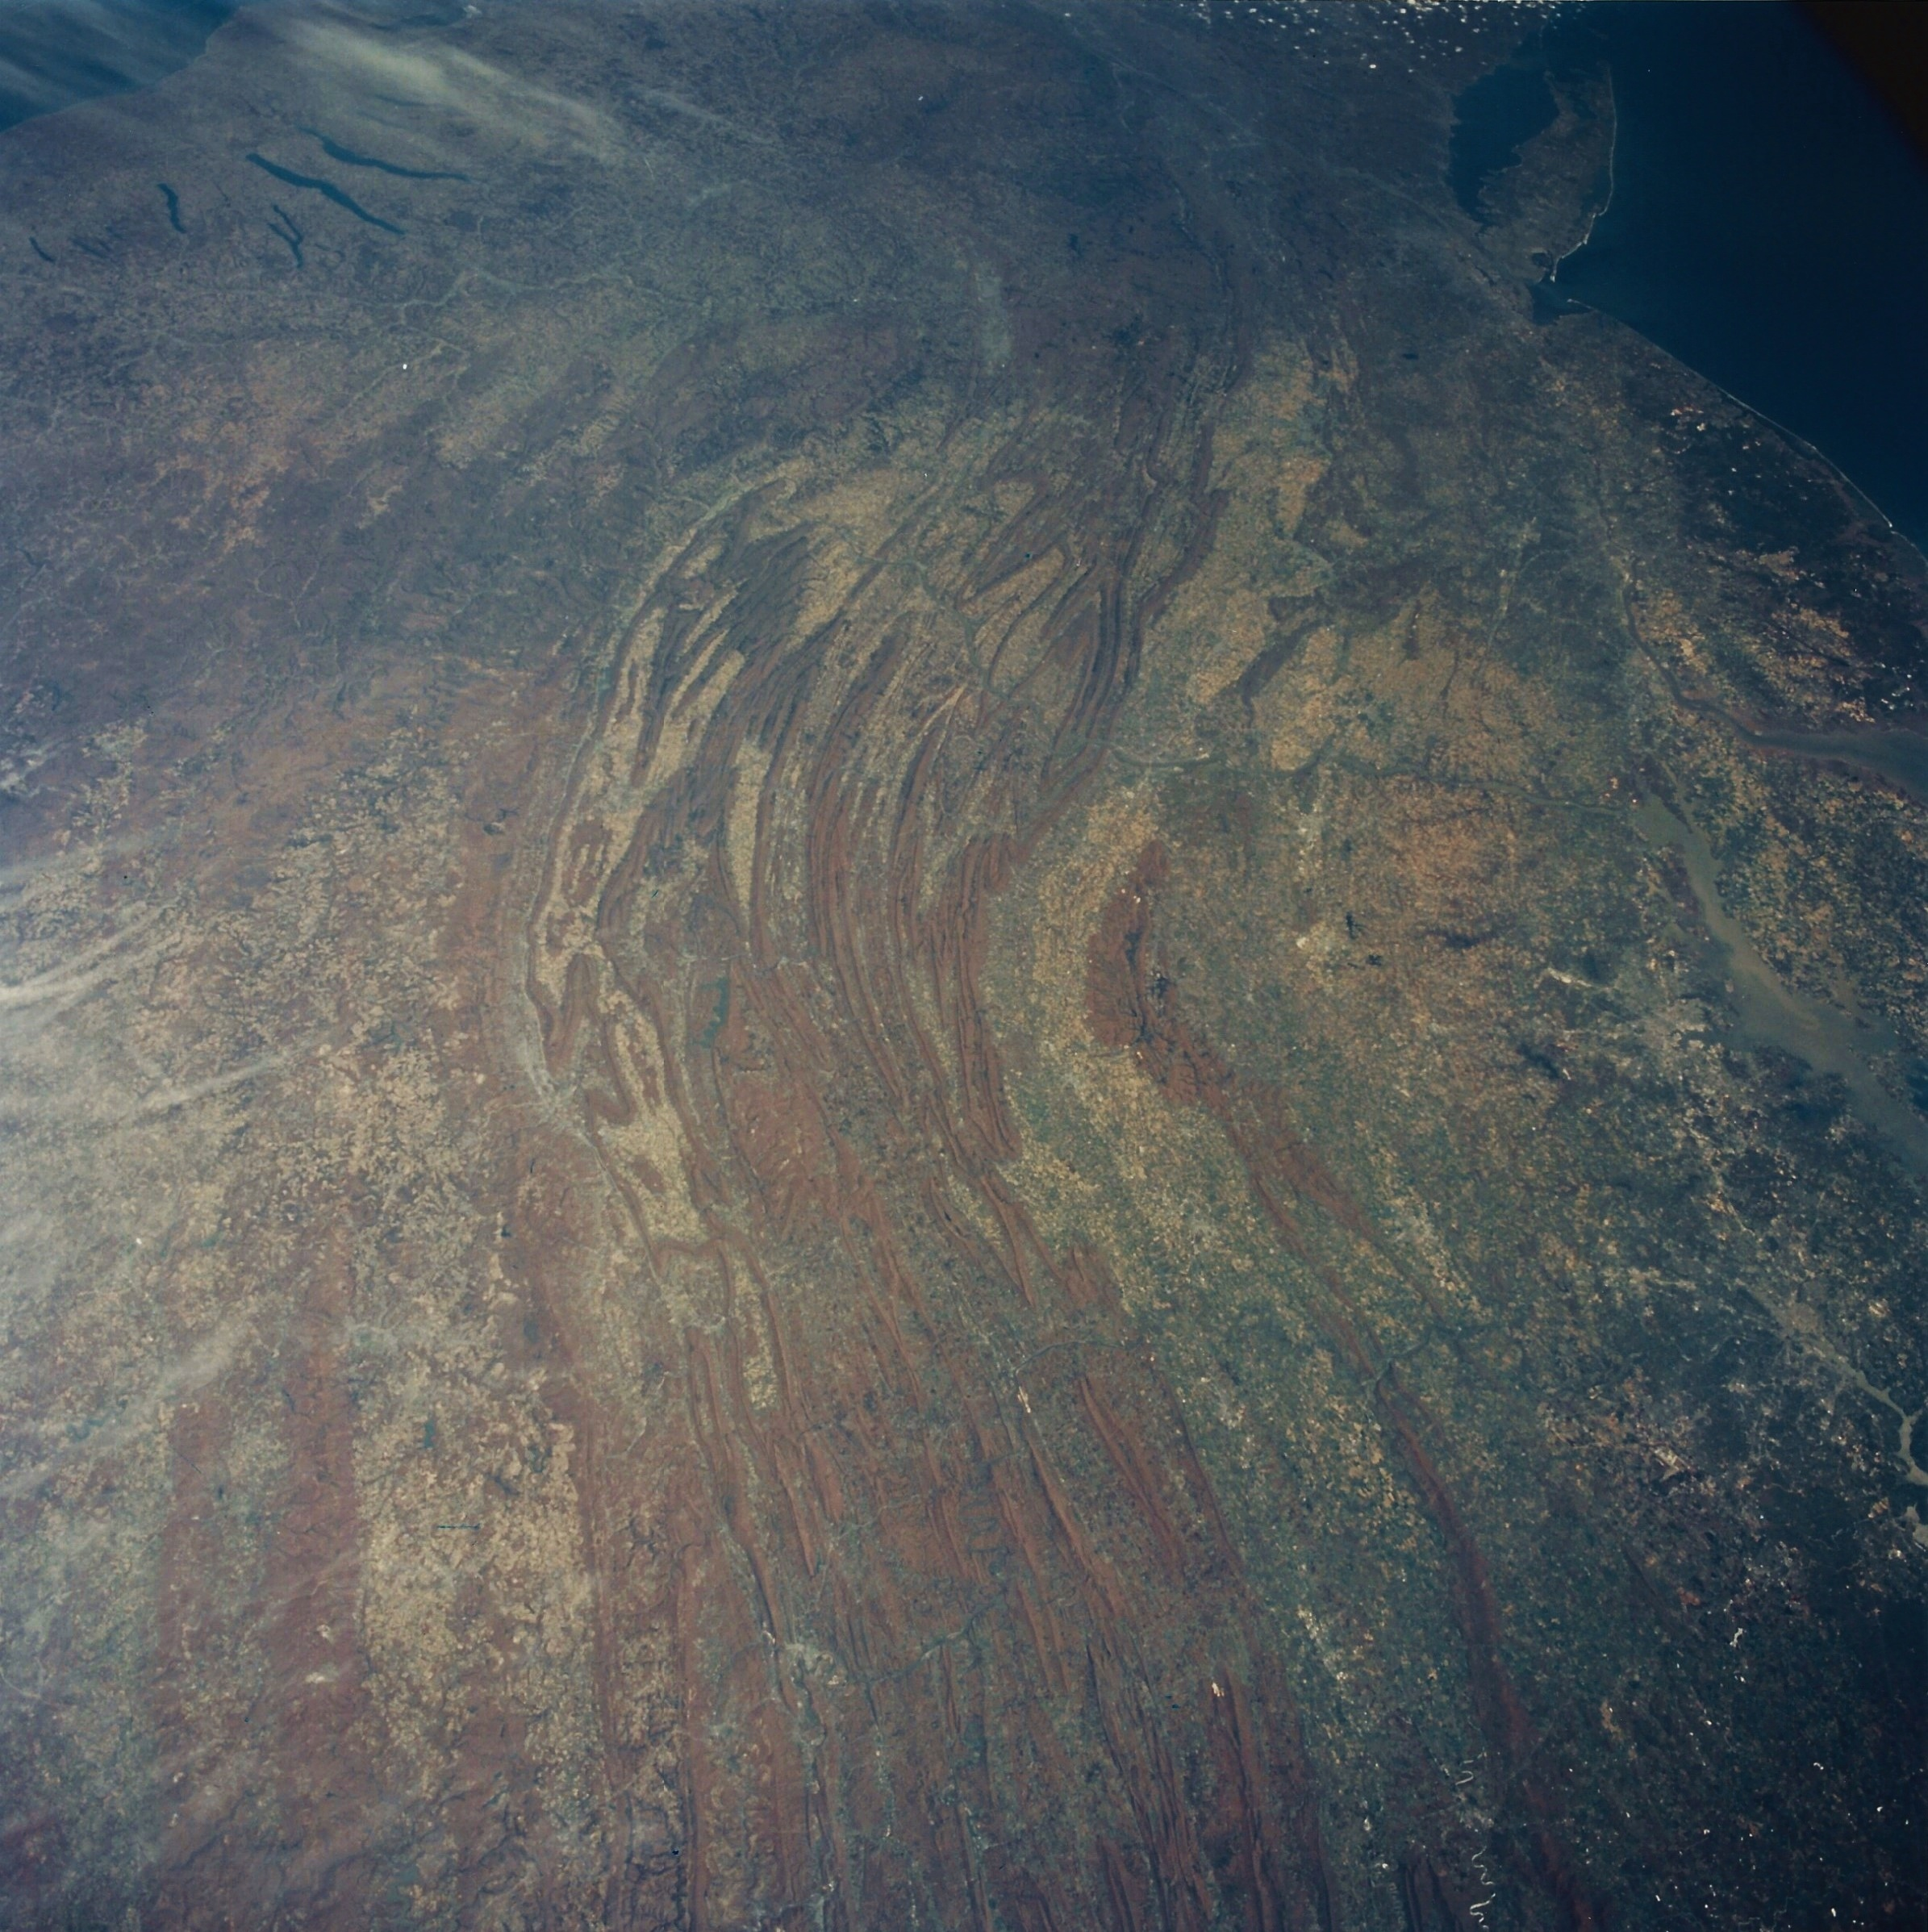 Endeavour's astronauts on the STS-59 crew took this image of the Appalachian Mountain chain, looking north. April 18, 1994. (NASA STS059-230-074)